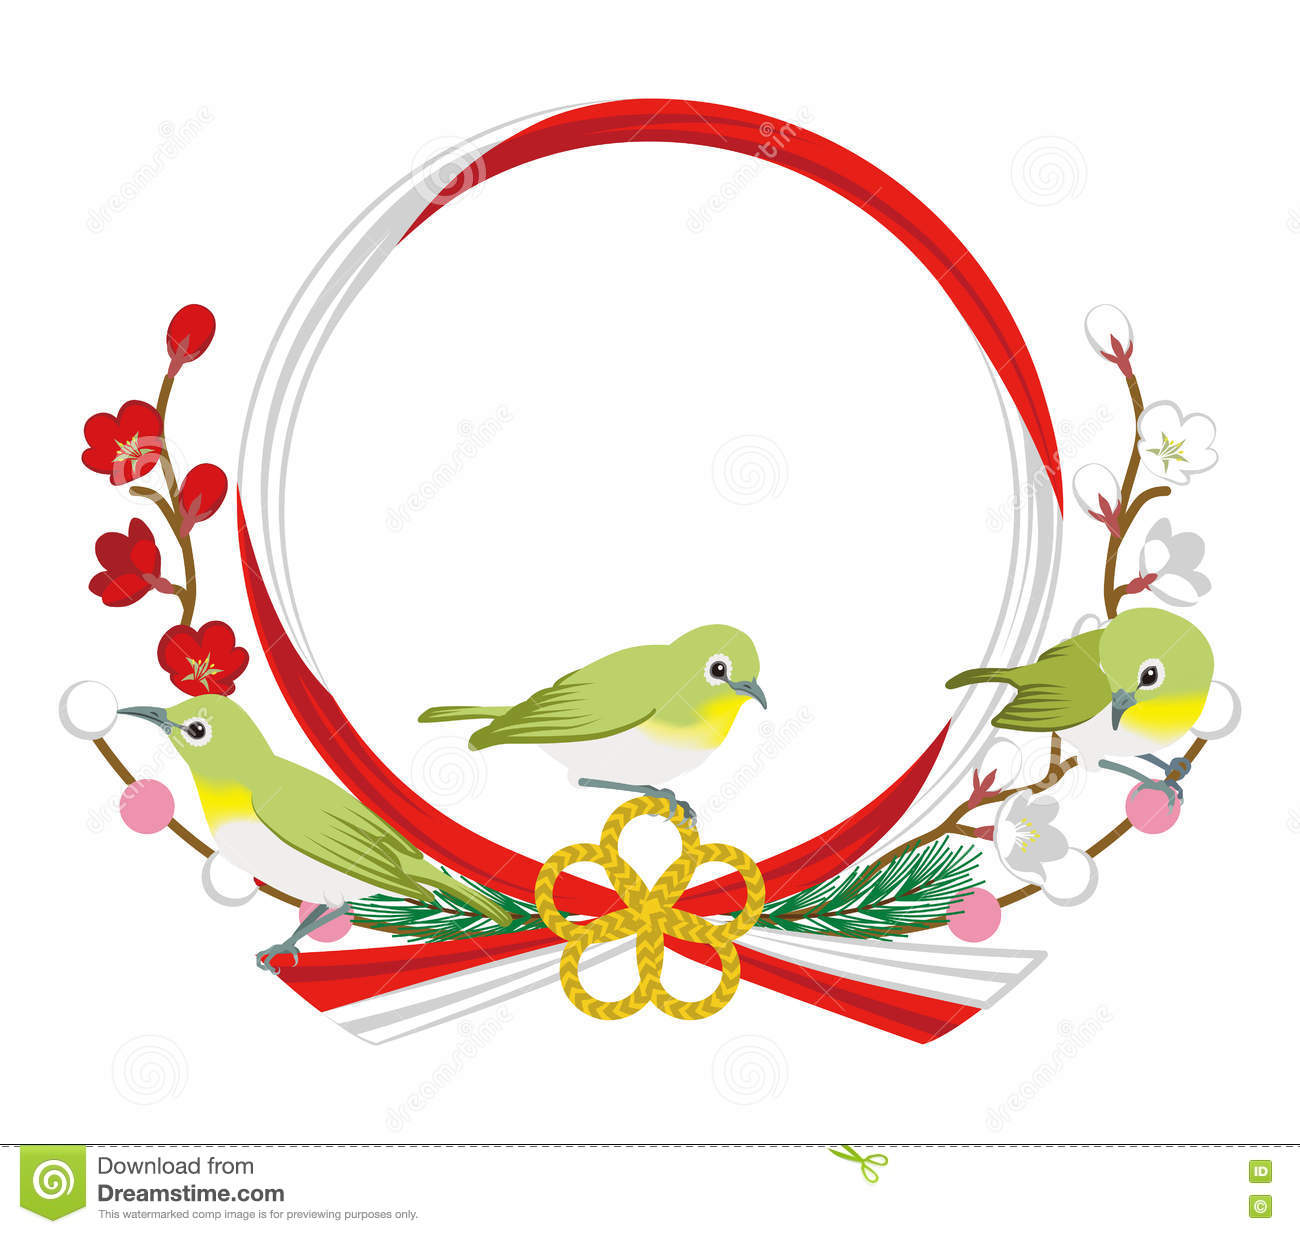 Japanese White-eye clipart #5, Download drawings